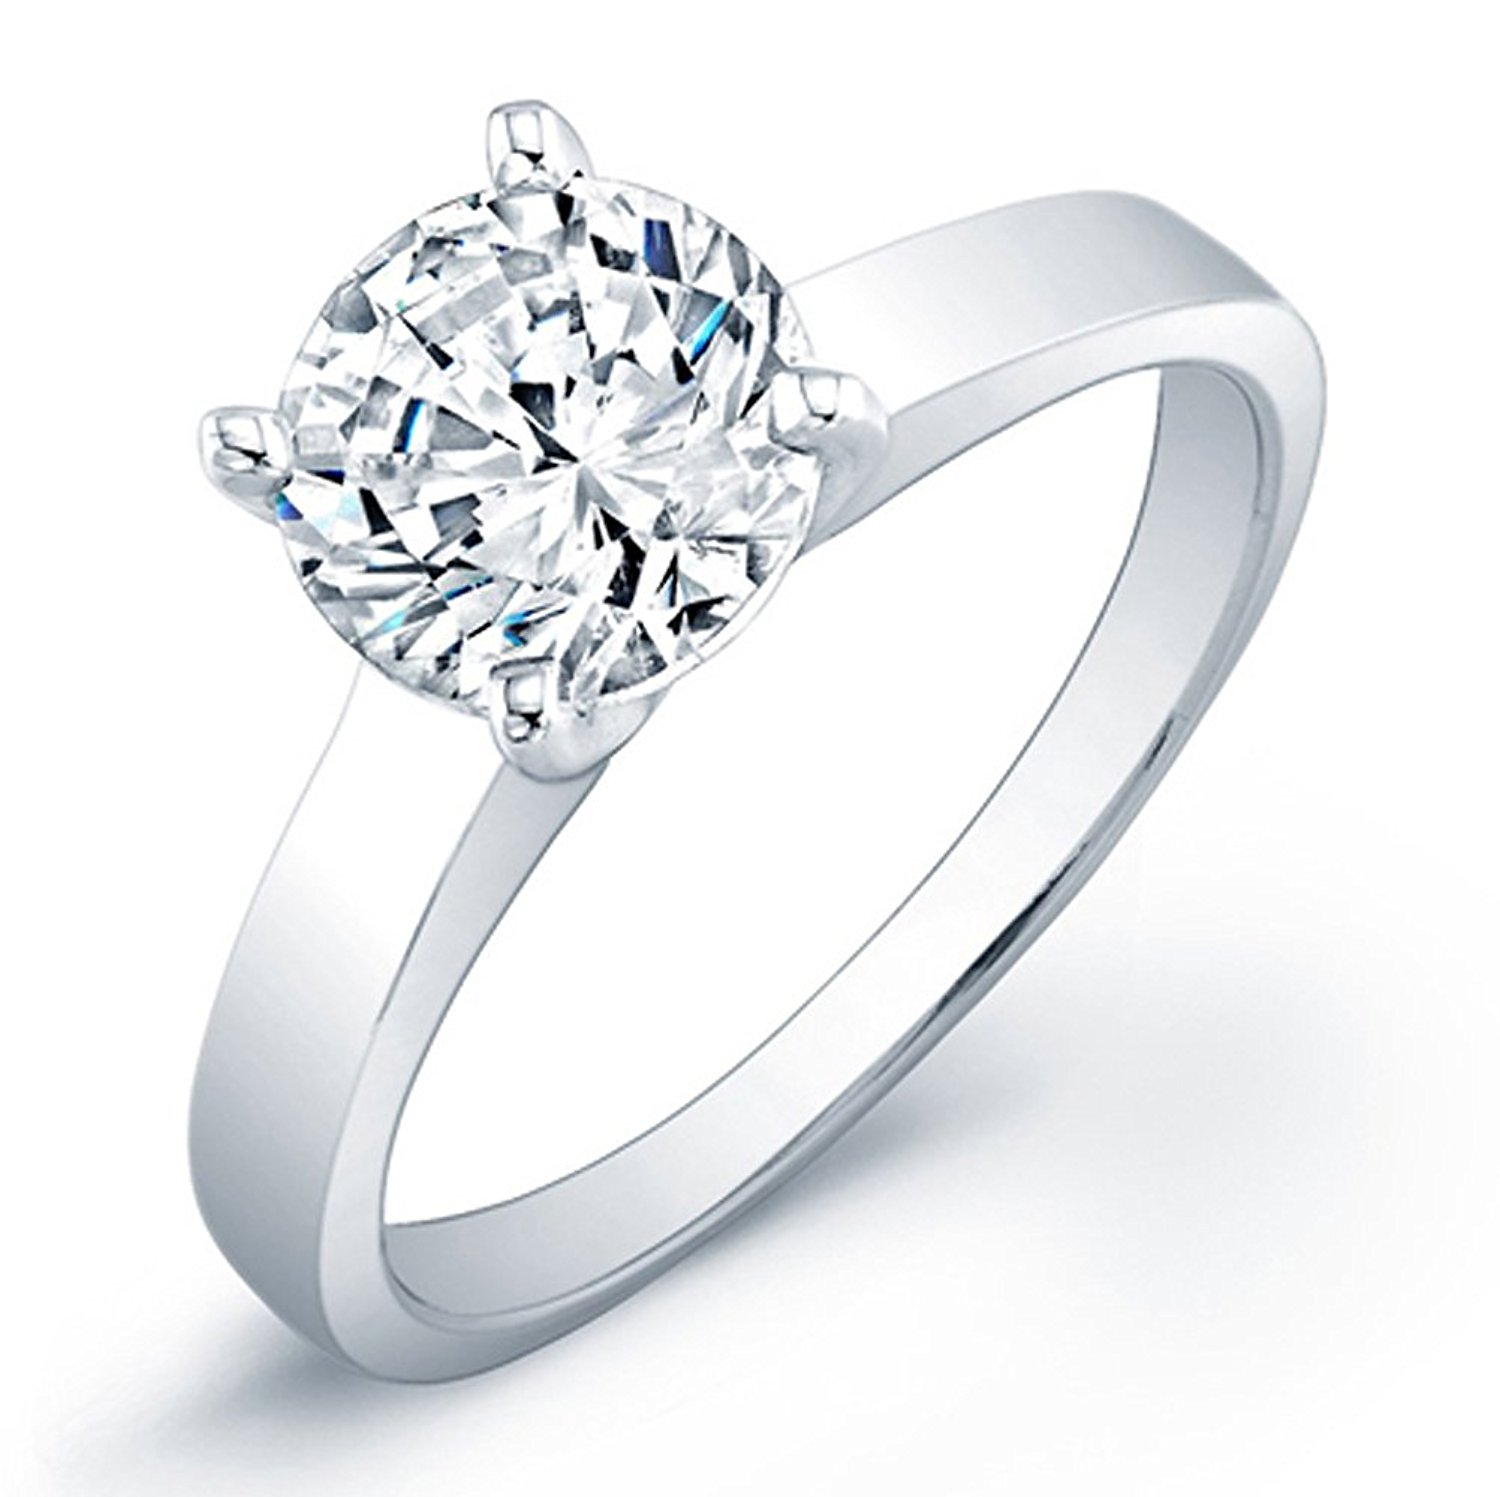 925 Sterling Silver Solitaire Ring 2.00 Carat 7mm Round Designer Inspired Solitaire. 4 Prong Setting